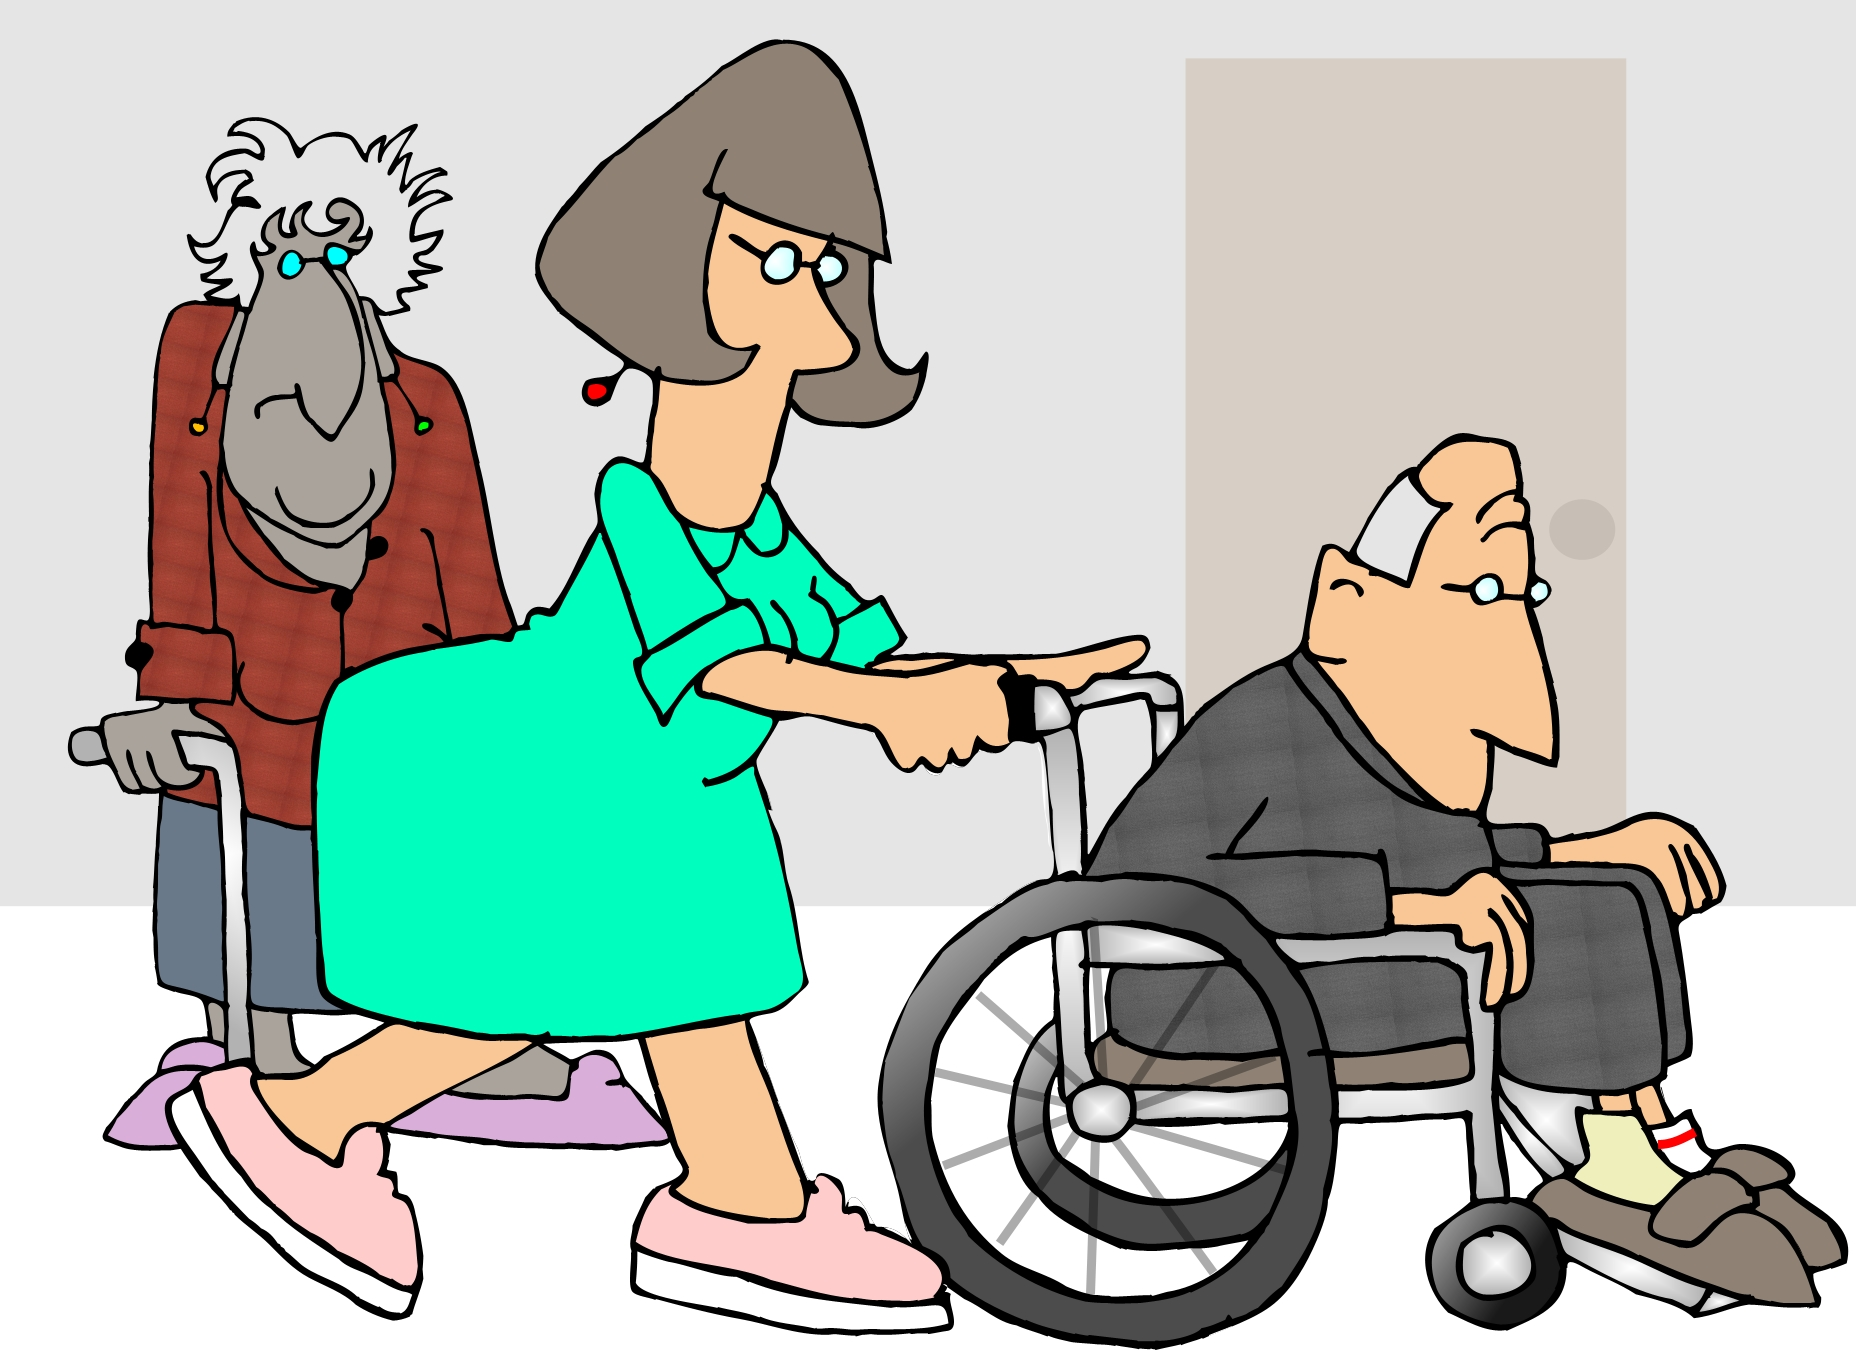 Older people drawing image in Cliparts category at pixy.org